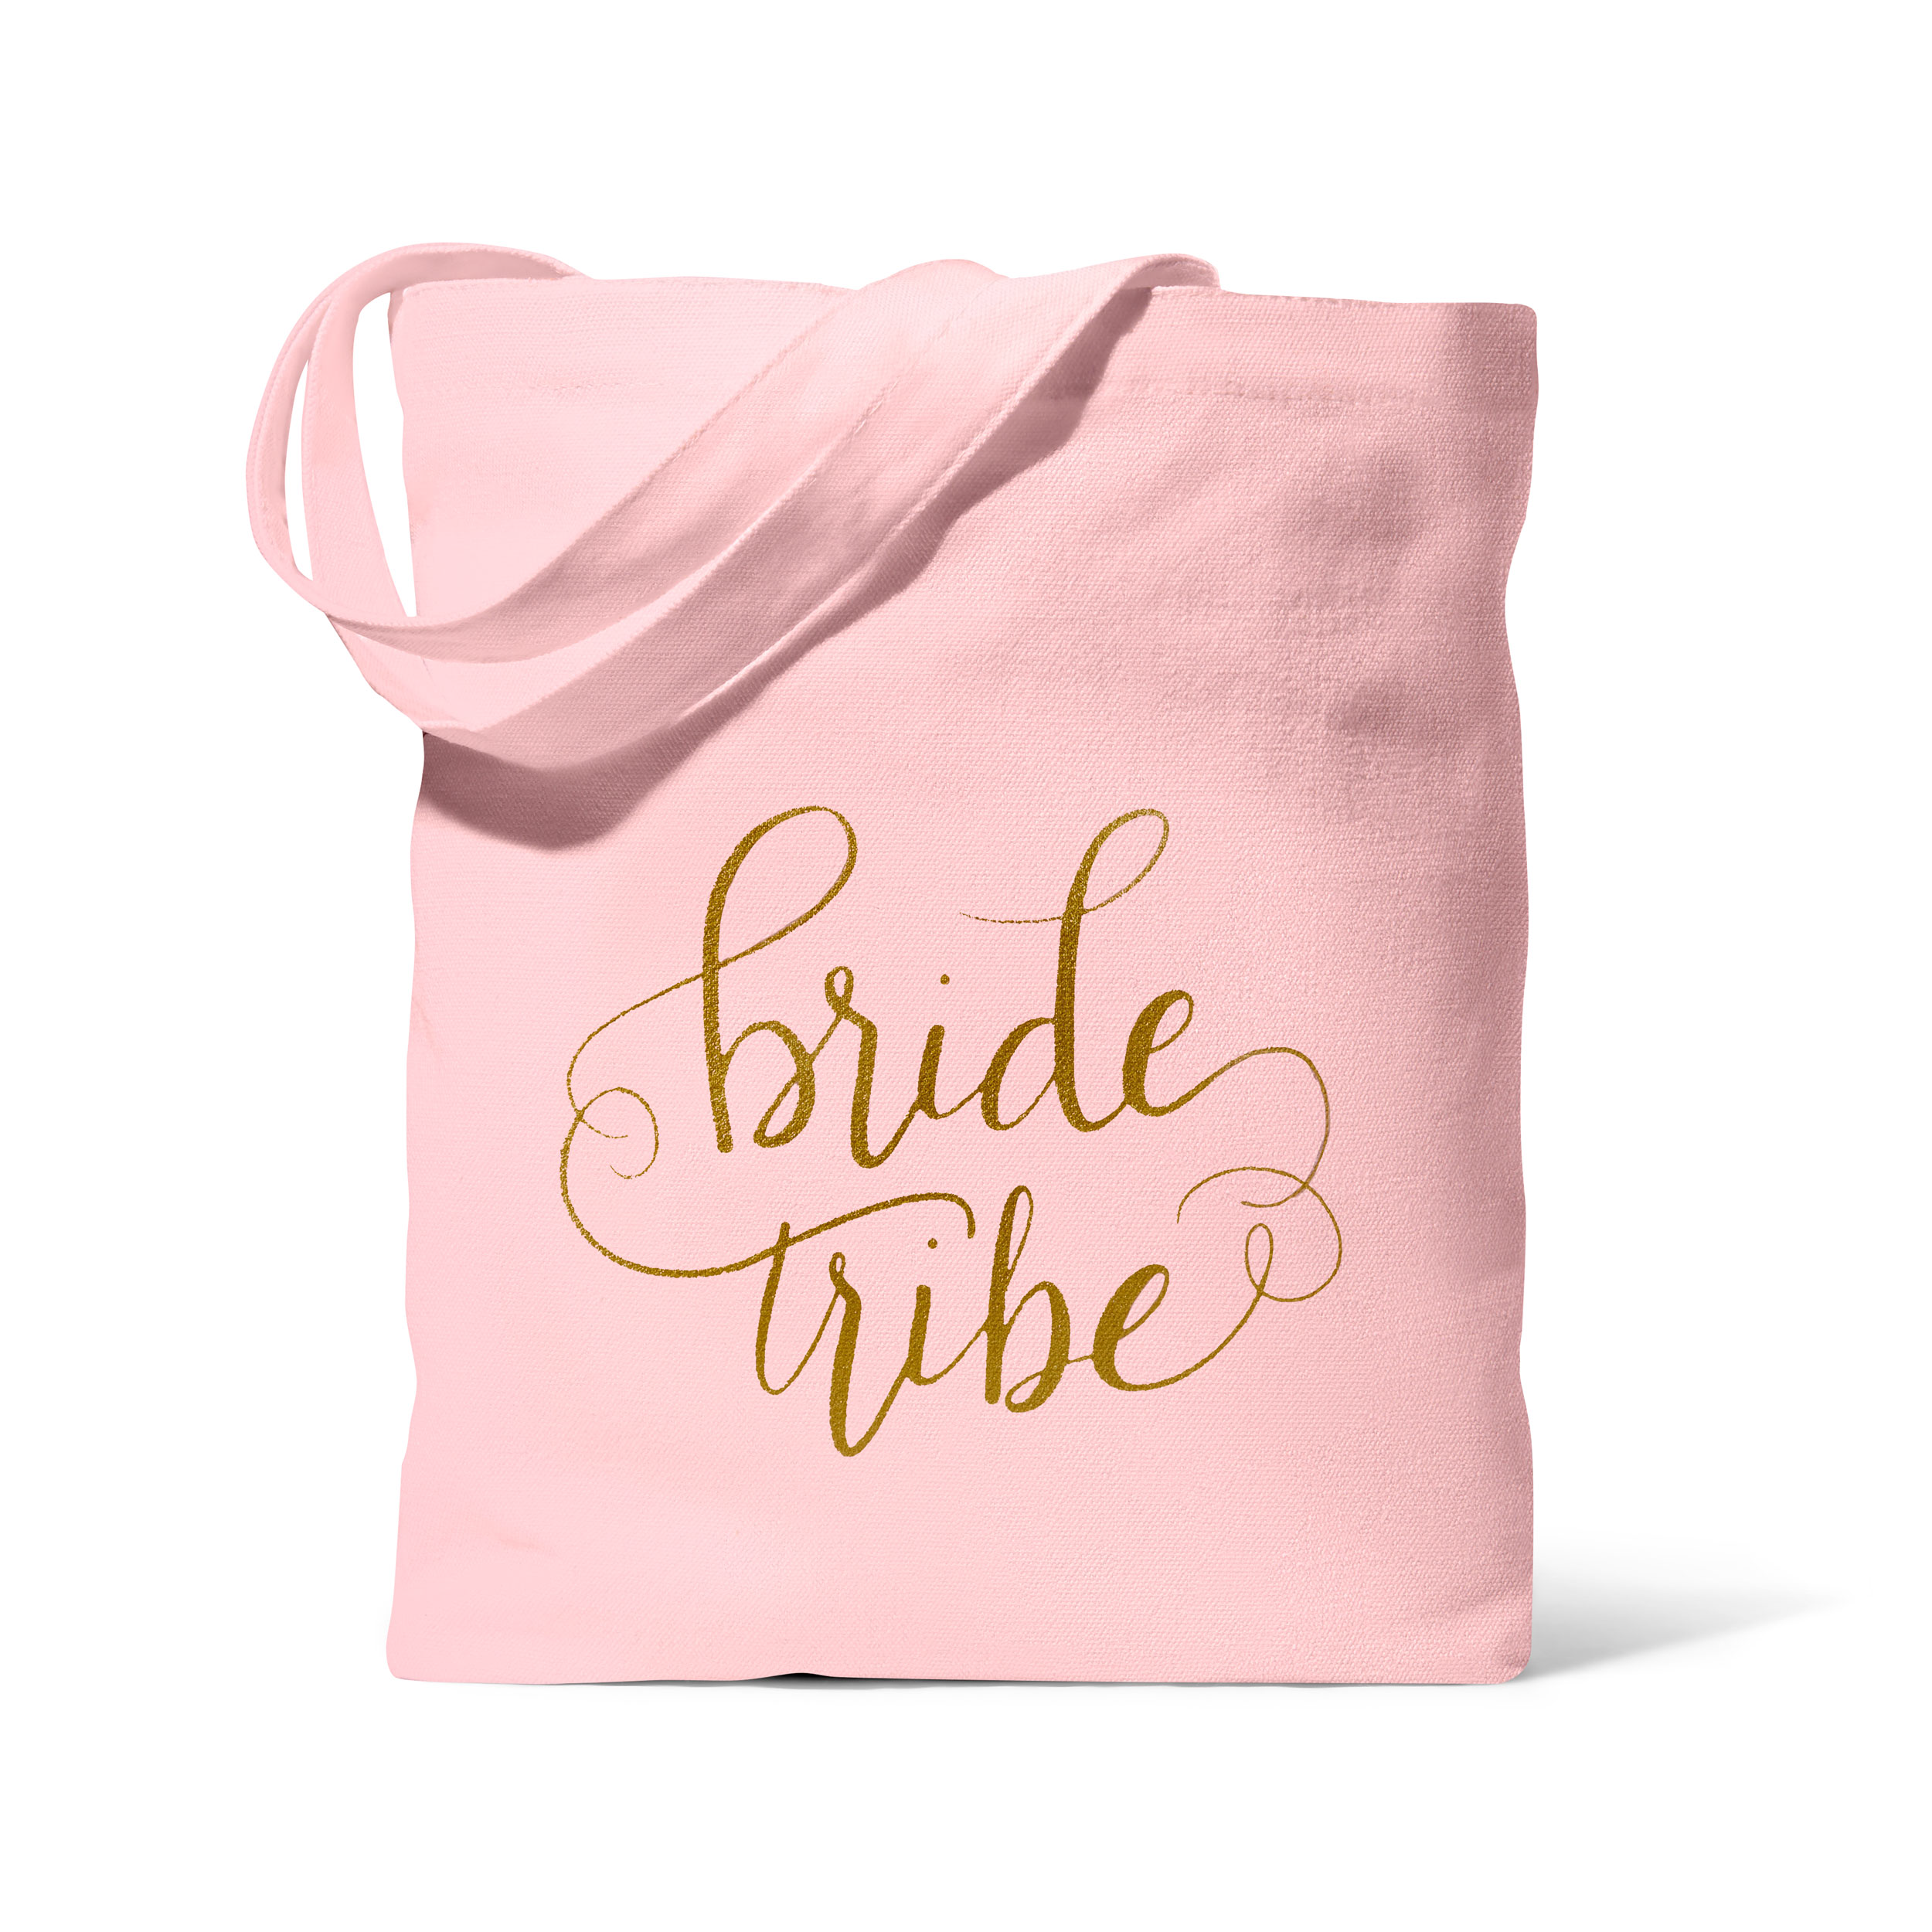 Pink Bride Tribe Canvas Beach Tote Bag